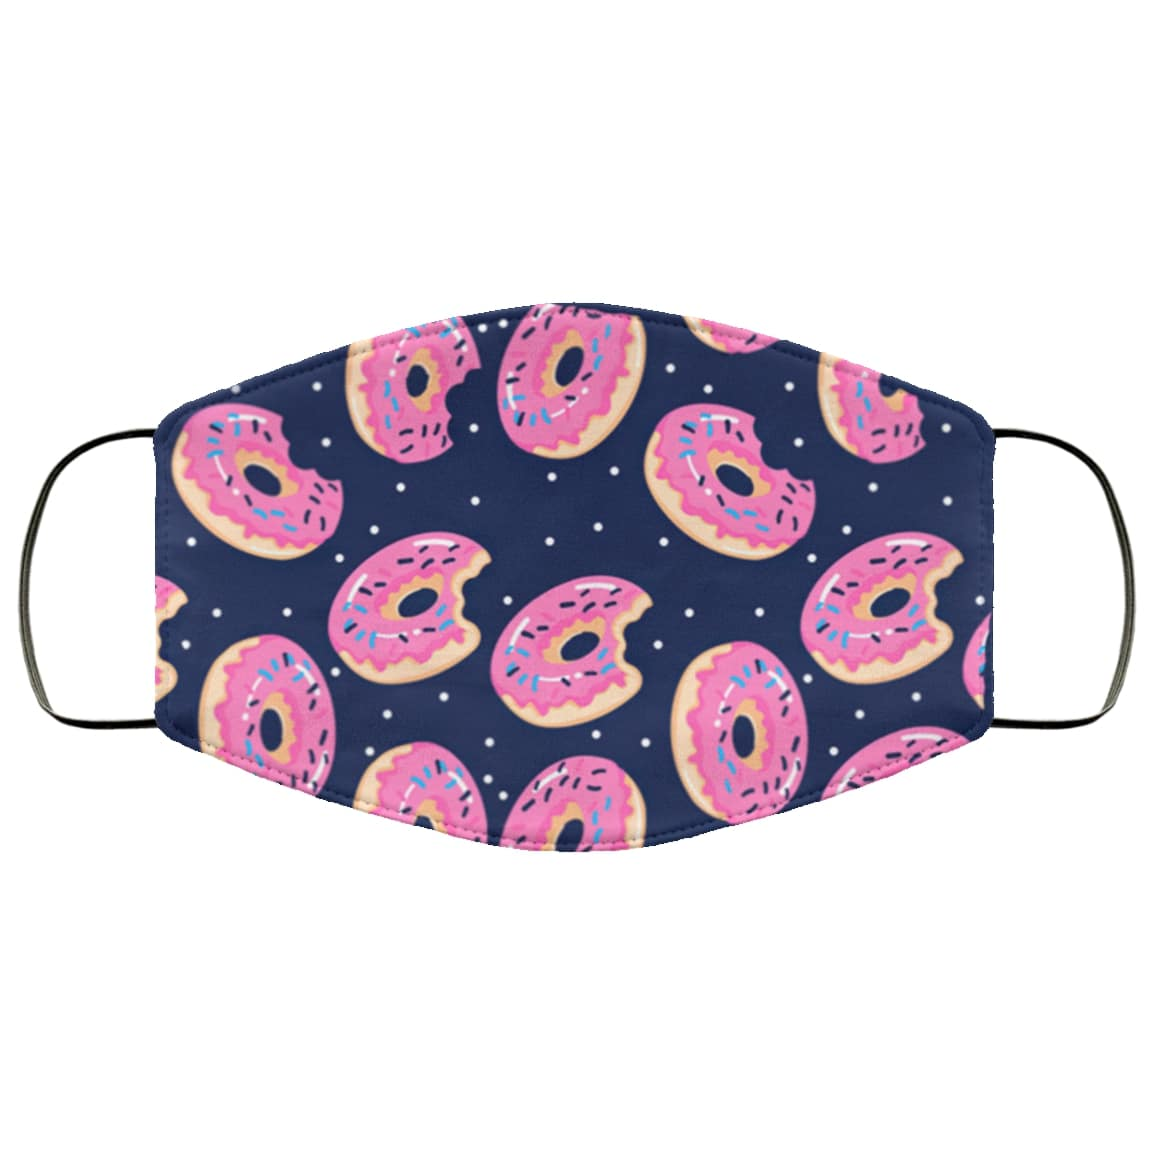 Pink donut all over printed face mask 4